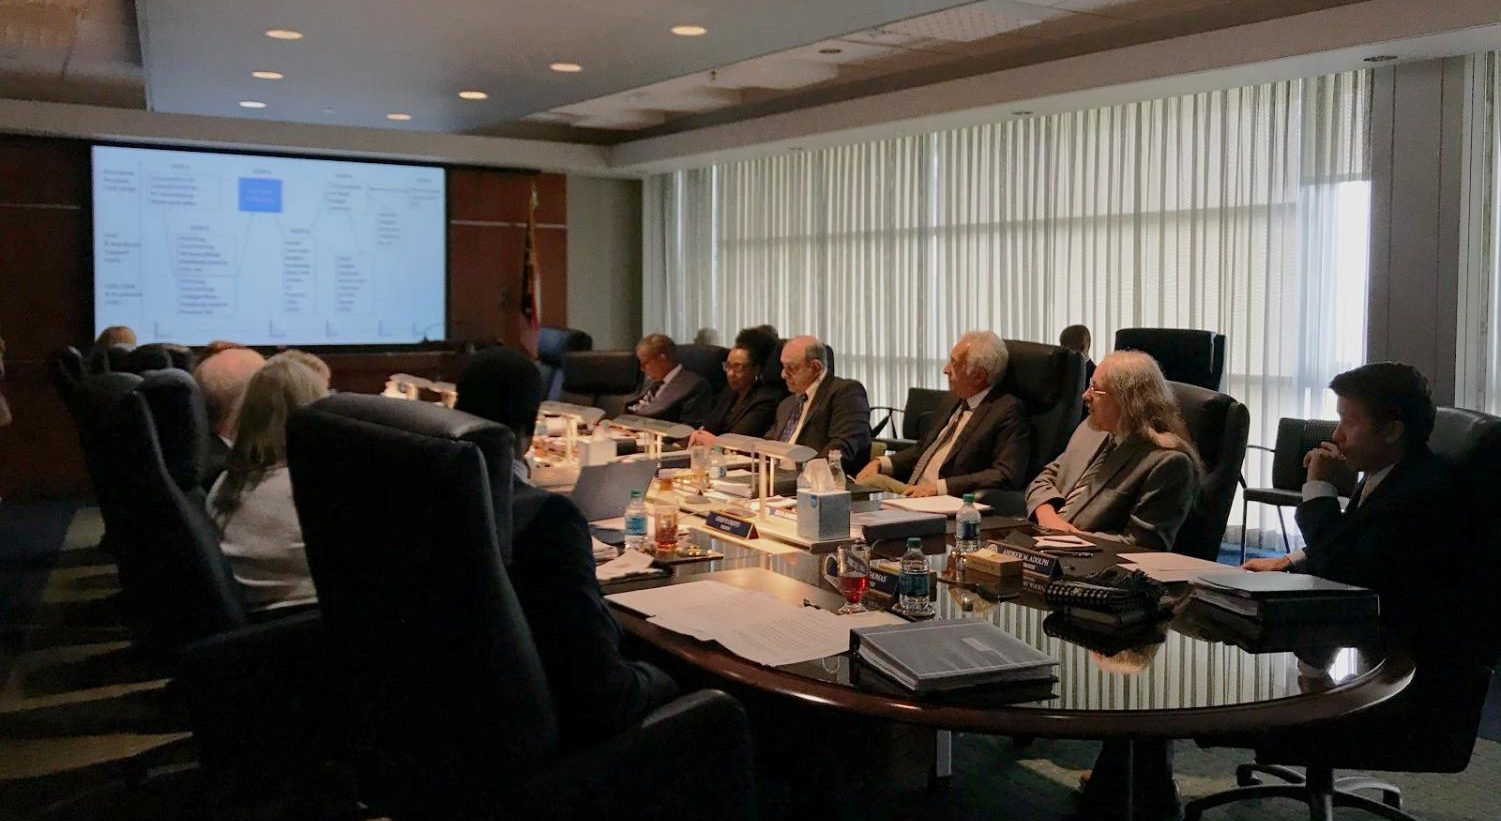 The University of Akron Board of Trustees reviews a chart presented by Interim President John Green during Wednesday's meeting at the Taber Student Union.